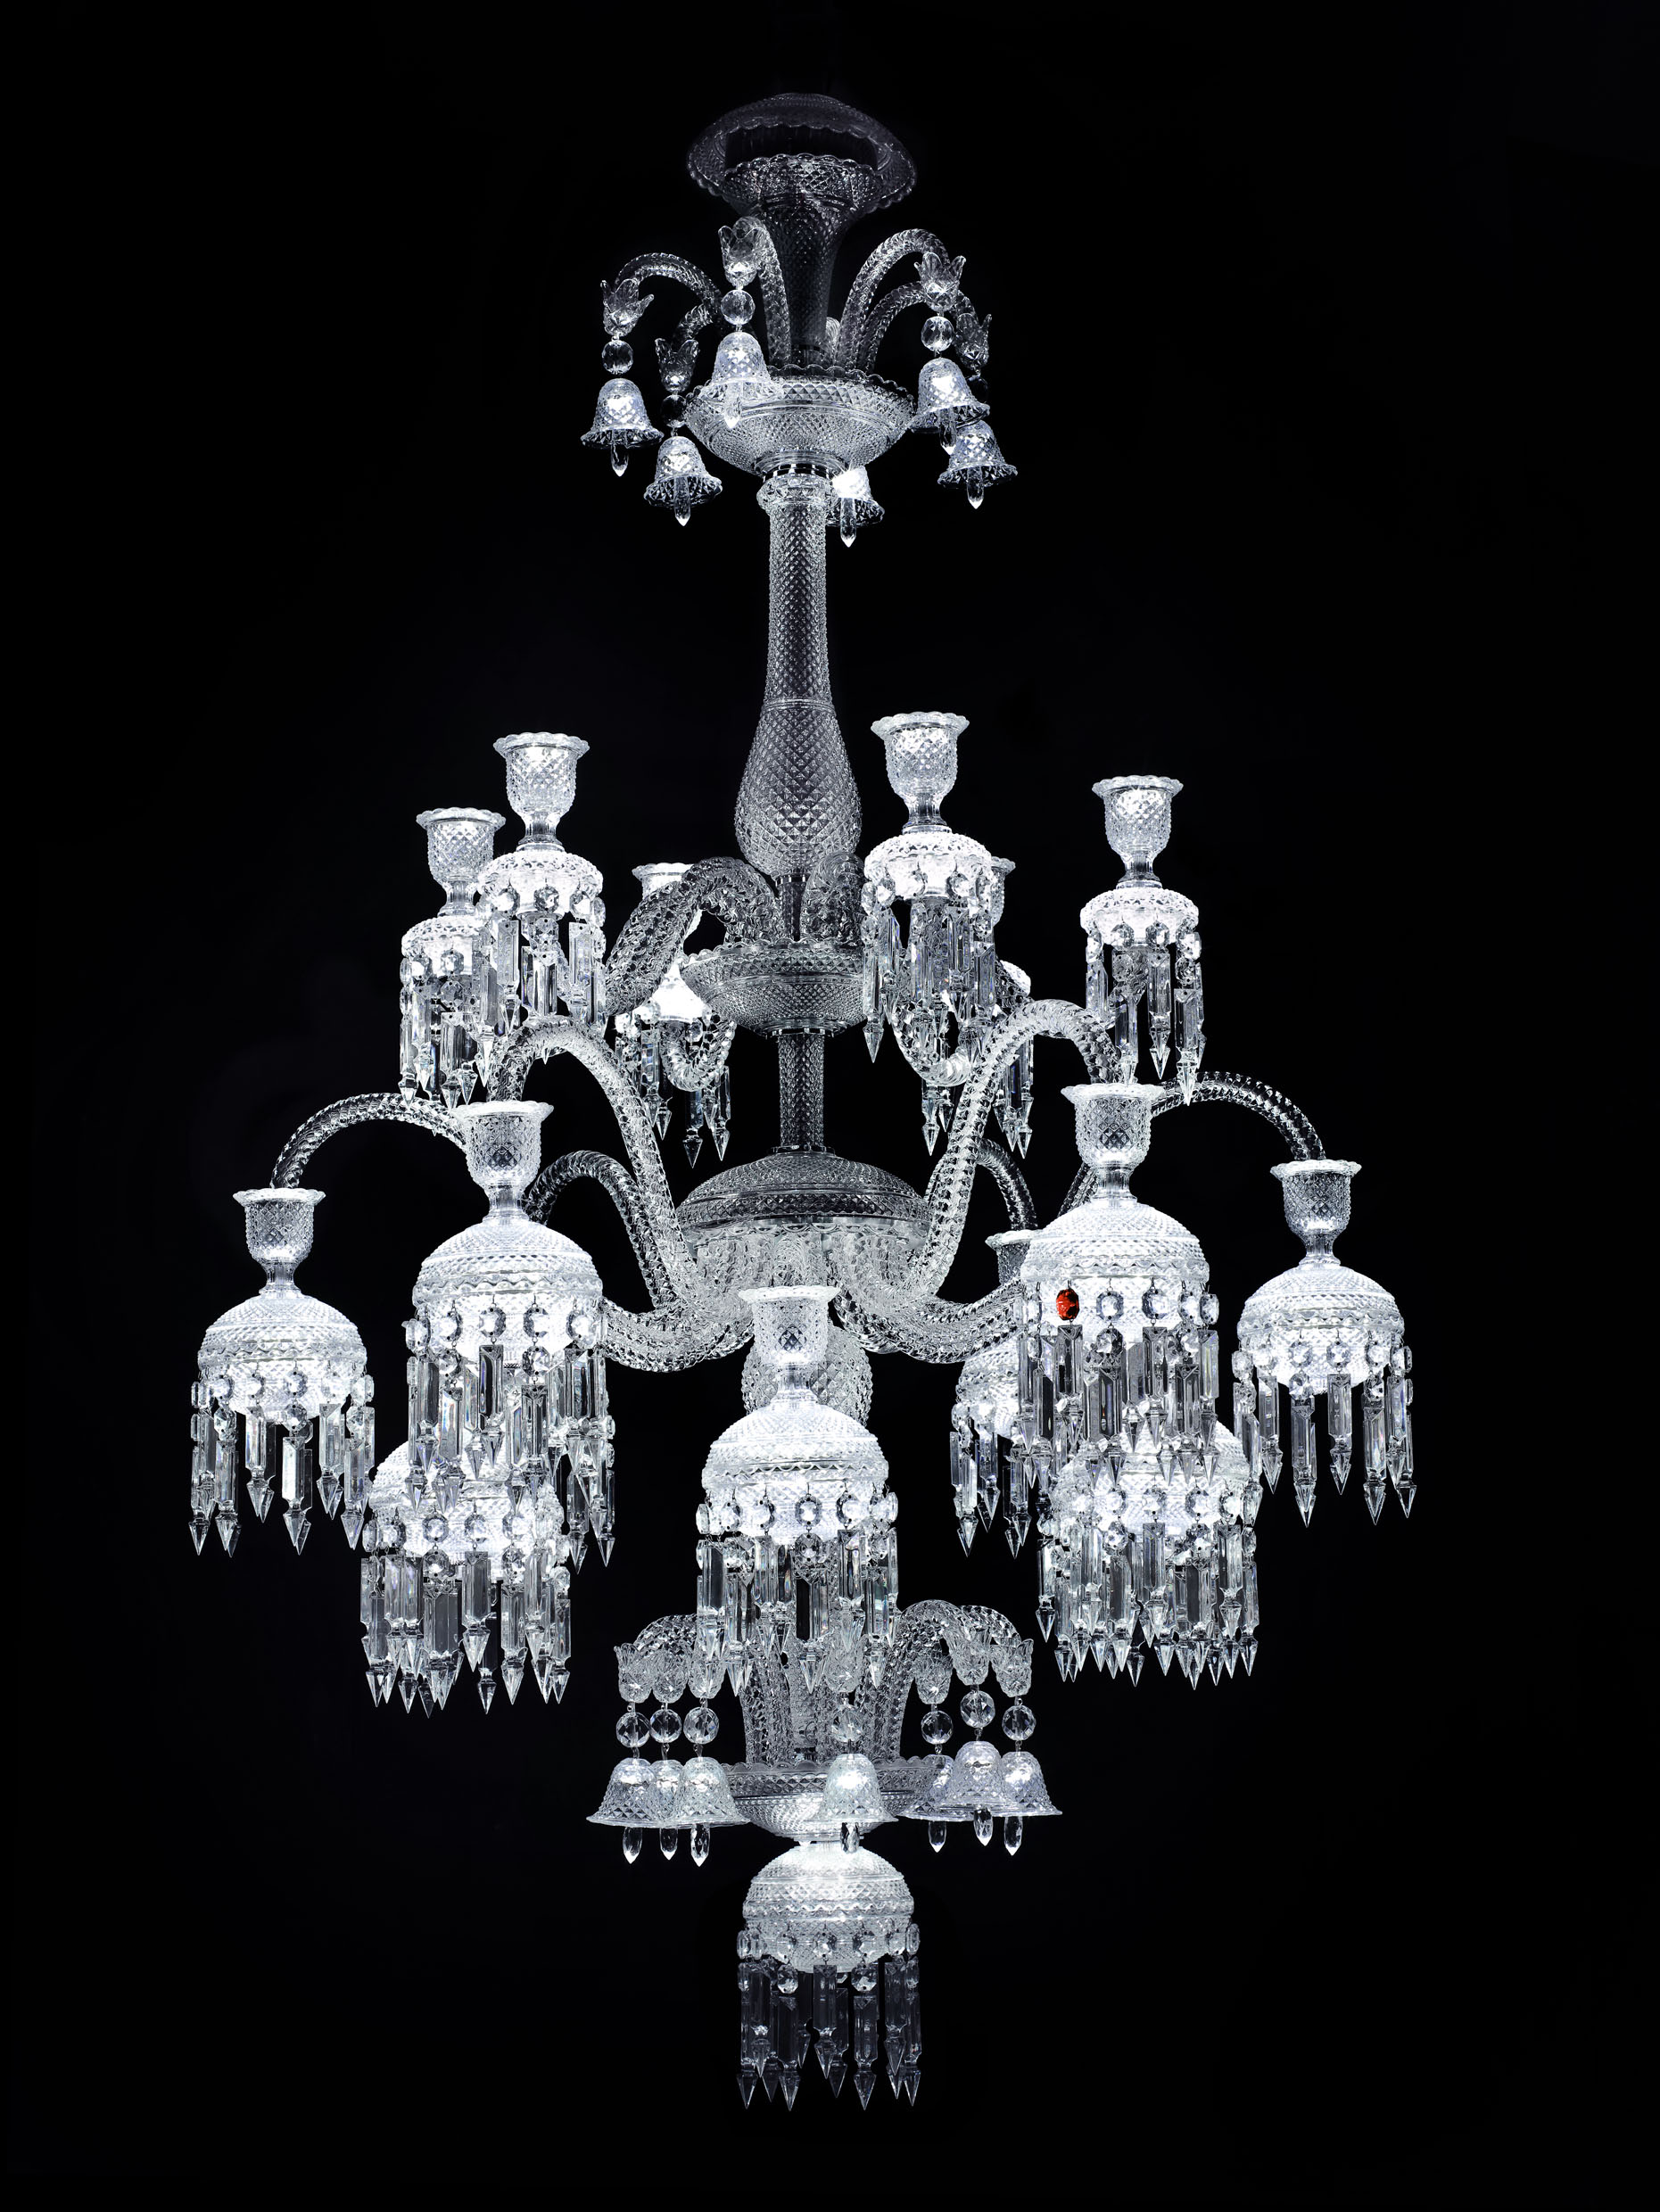 Report from the opening of the exhibition chandeliers juwels of baccarat solstice comte 2010 kristall baccarat arubaitofo Images